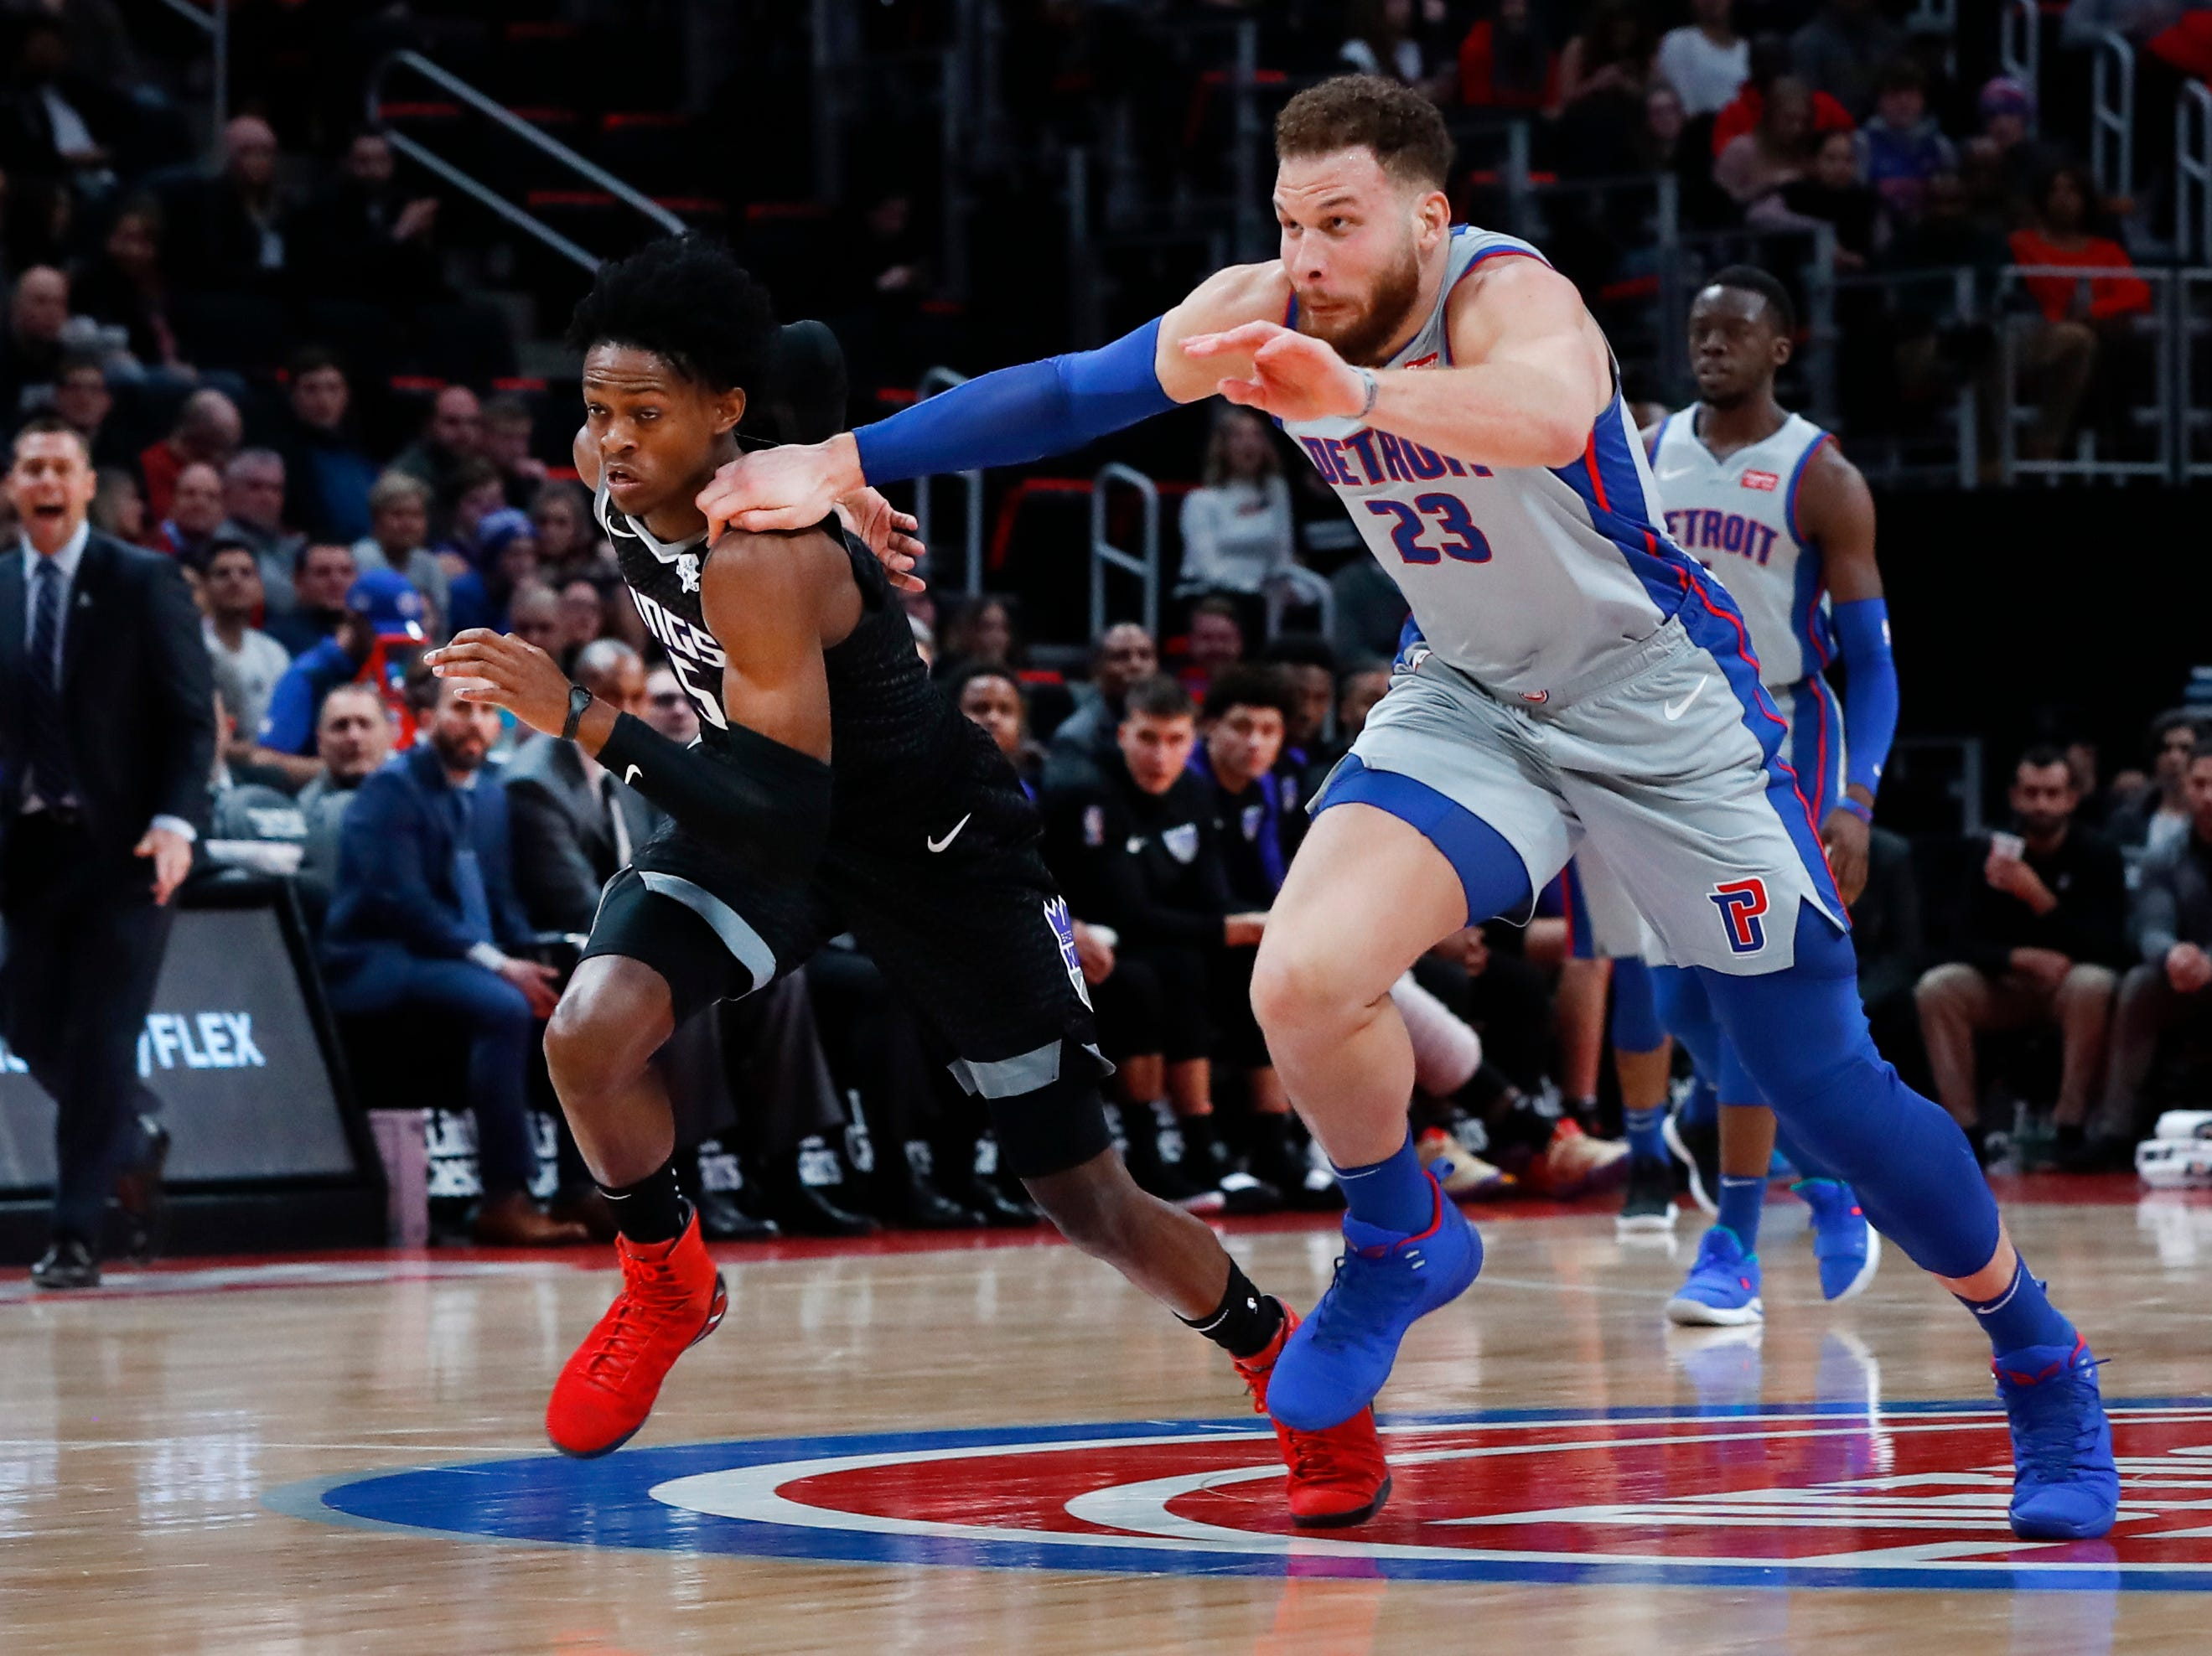 Detroit Pistons forward Blake Griffin (23) fouls Sacramento Kings guard De'Aaron Fox (5) while chasing a loose ball during the second half of an NBA basketball game in Detroit, Saturday, Jan. 19, 2019.